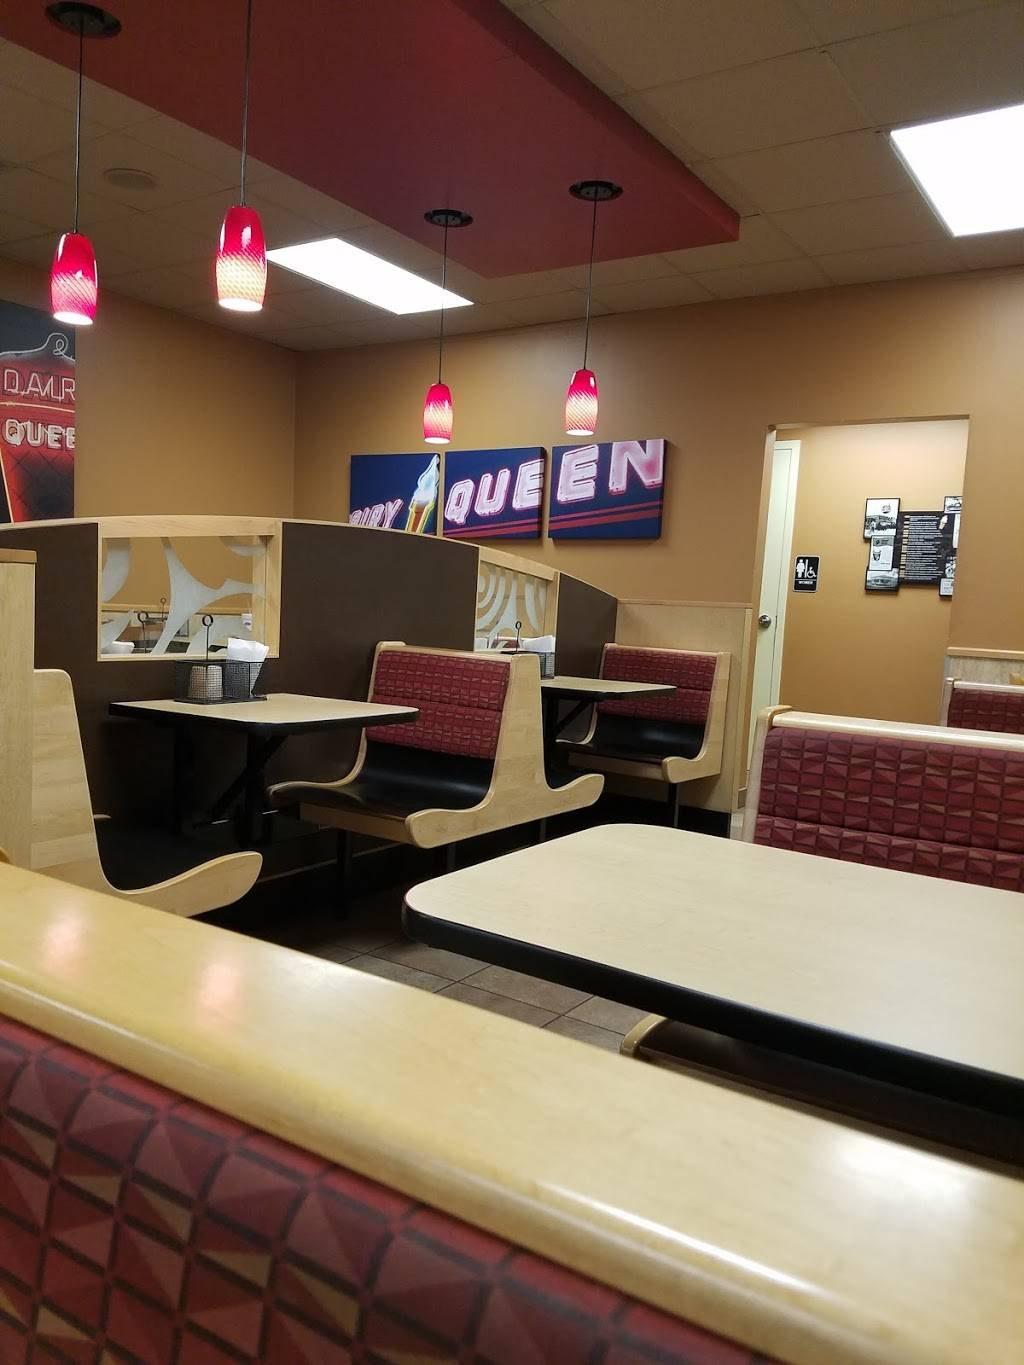 Dairy Queen Store   restaurant   3003 E State Hwy 21, Bryan, TX 77803, USA   9798227221 OR +1 979-822-7221